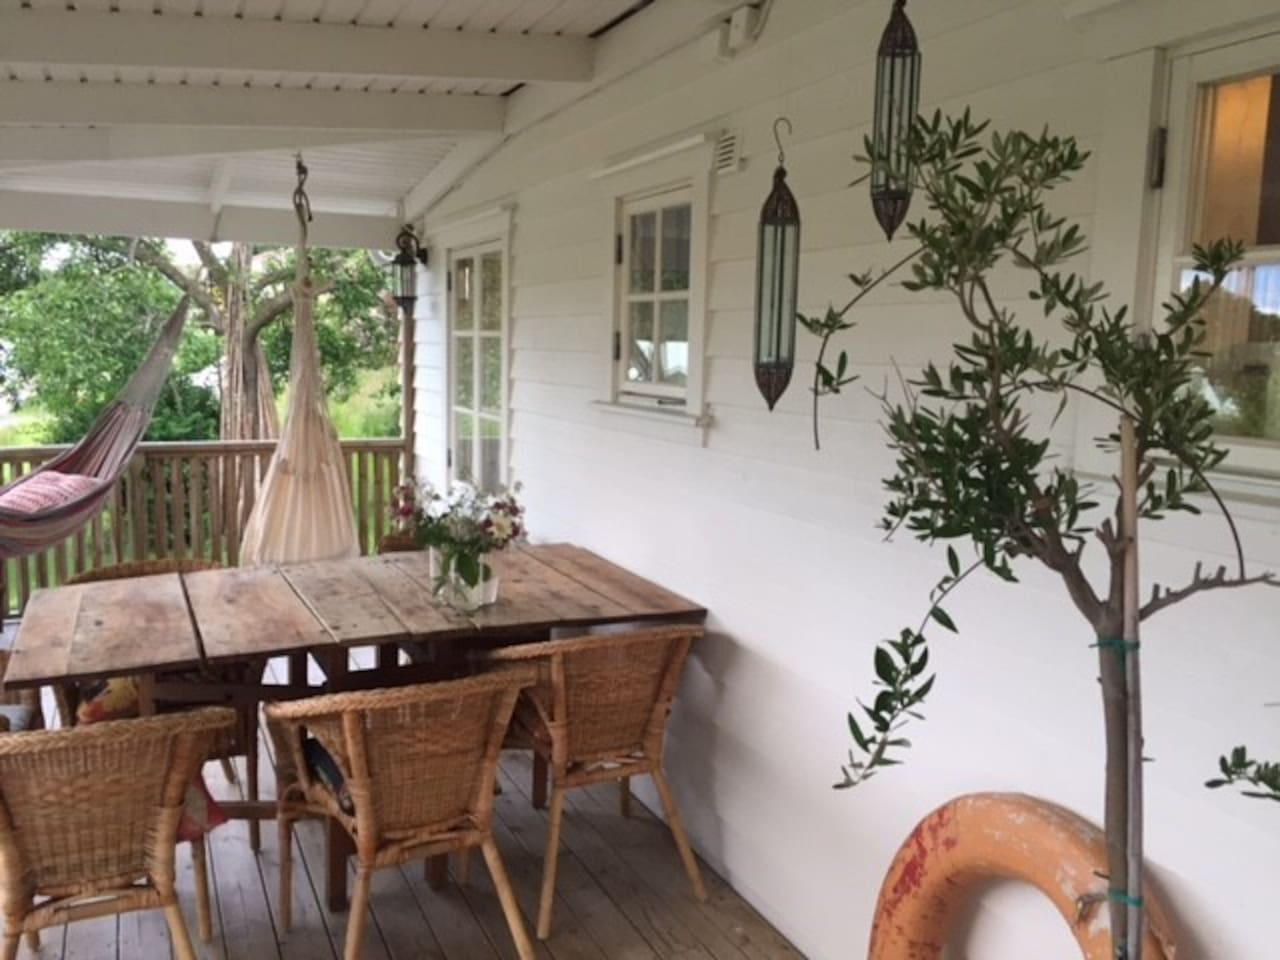 Cosy summerhouse in Kullsvik, Kullavik for relaxing vacation. Very close to the beach, 6 min walk. Wonderful sunsets. Sand and pebble beachesbeach. A big porch for long and lazy breakfasts. Last house on the road, no cars, a big garden for games.